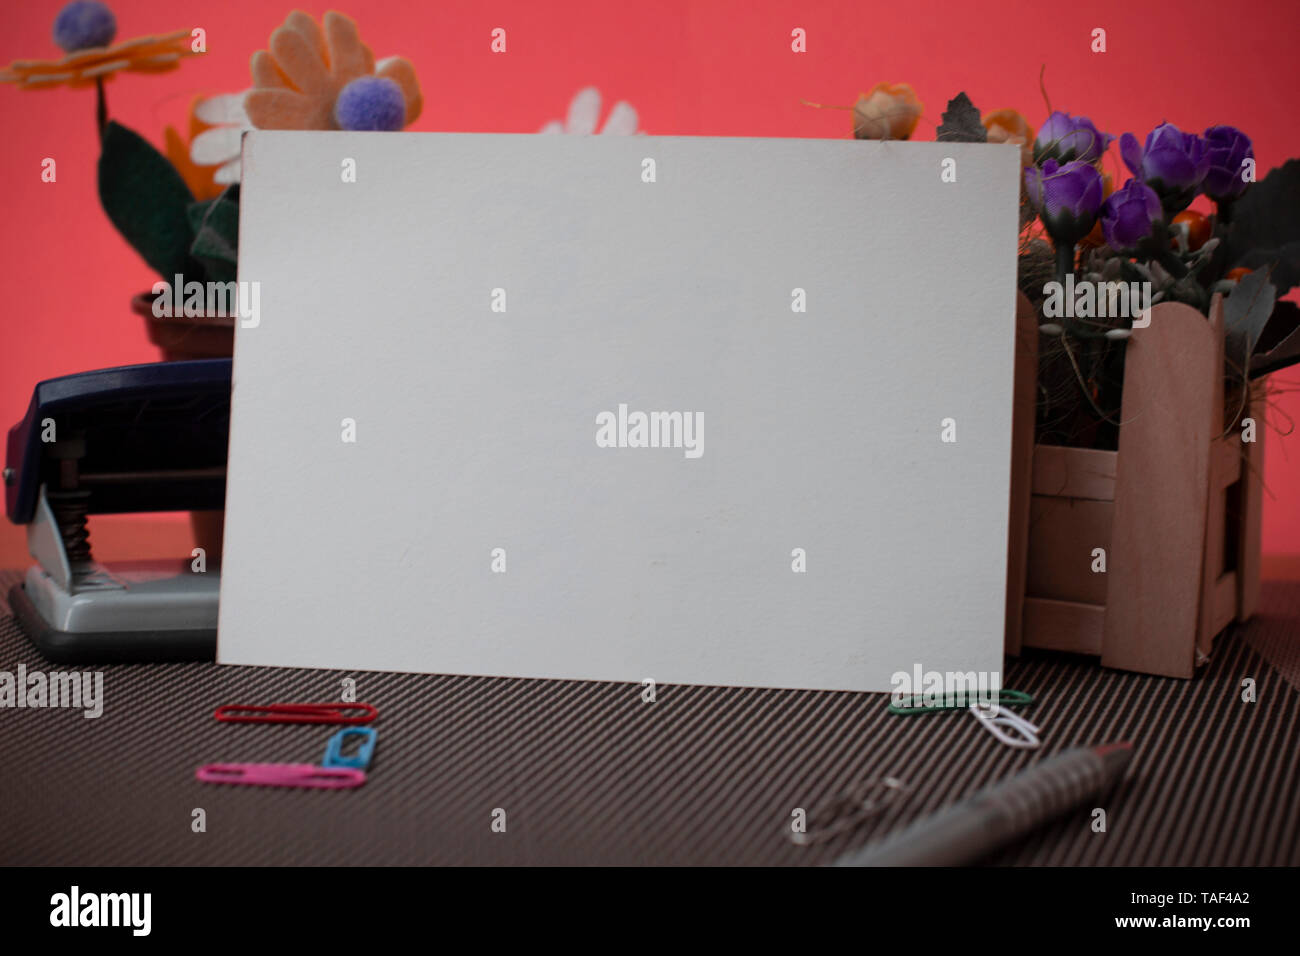 Flowers and writing equipments plus plain sheet above textured backdrop - Stock Image